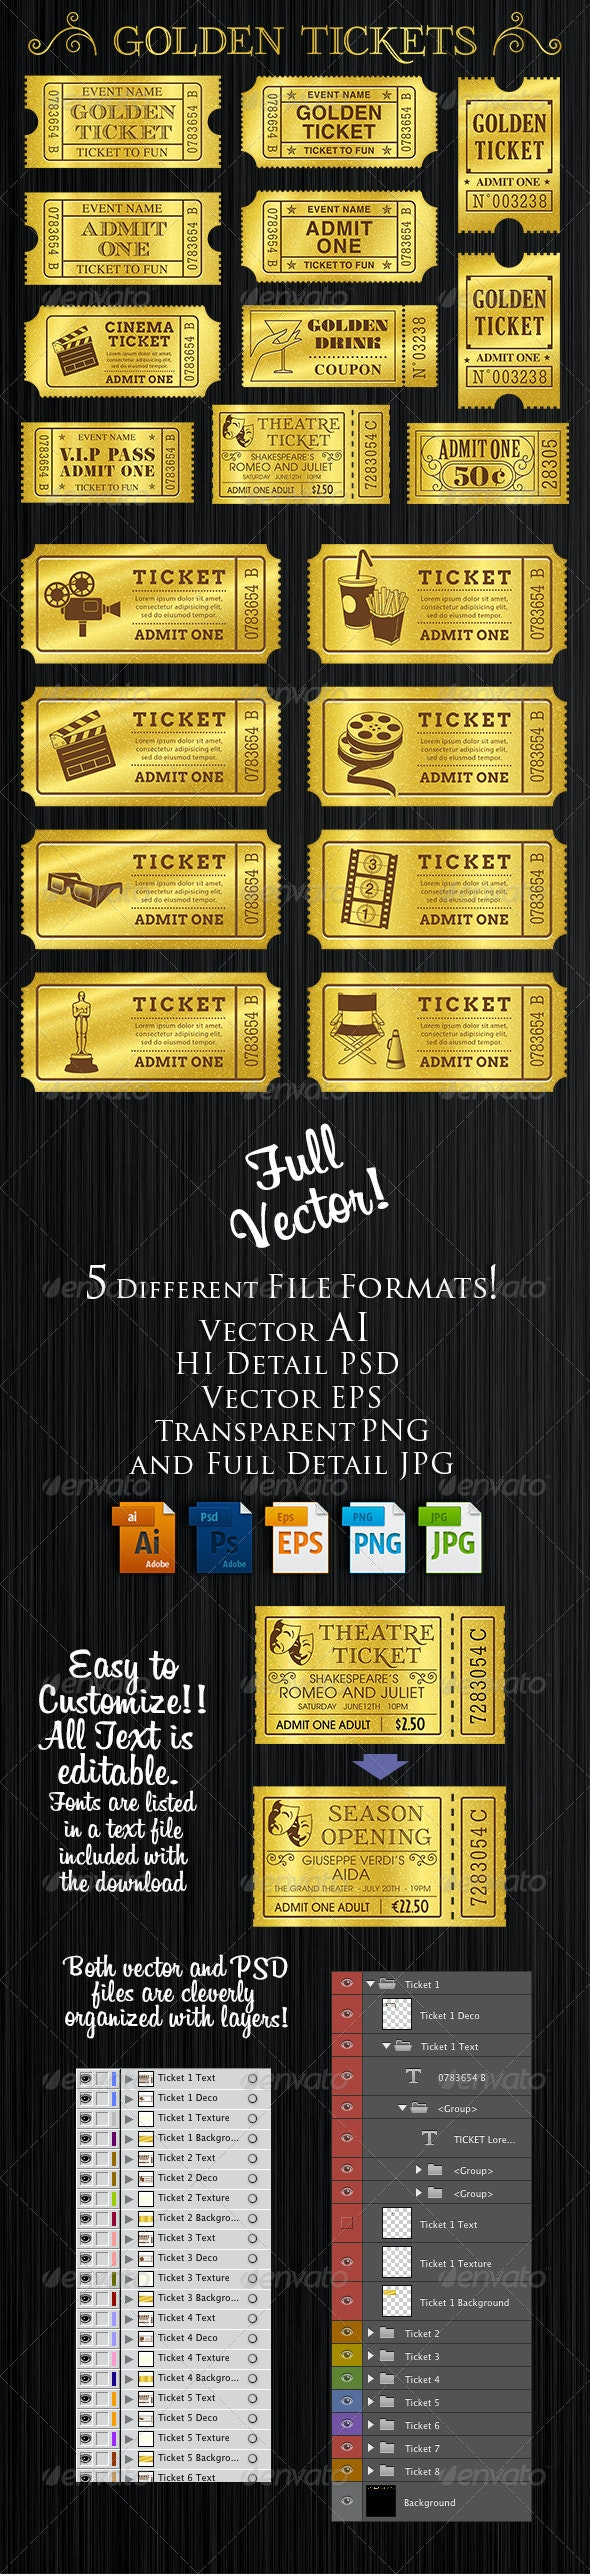 Golden Tickets Templates Set - Services Commercial / Shopping